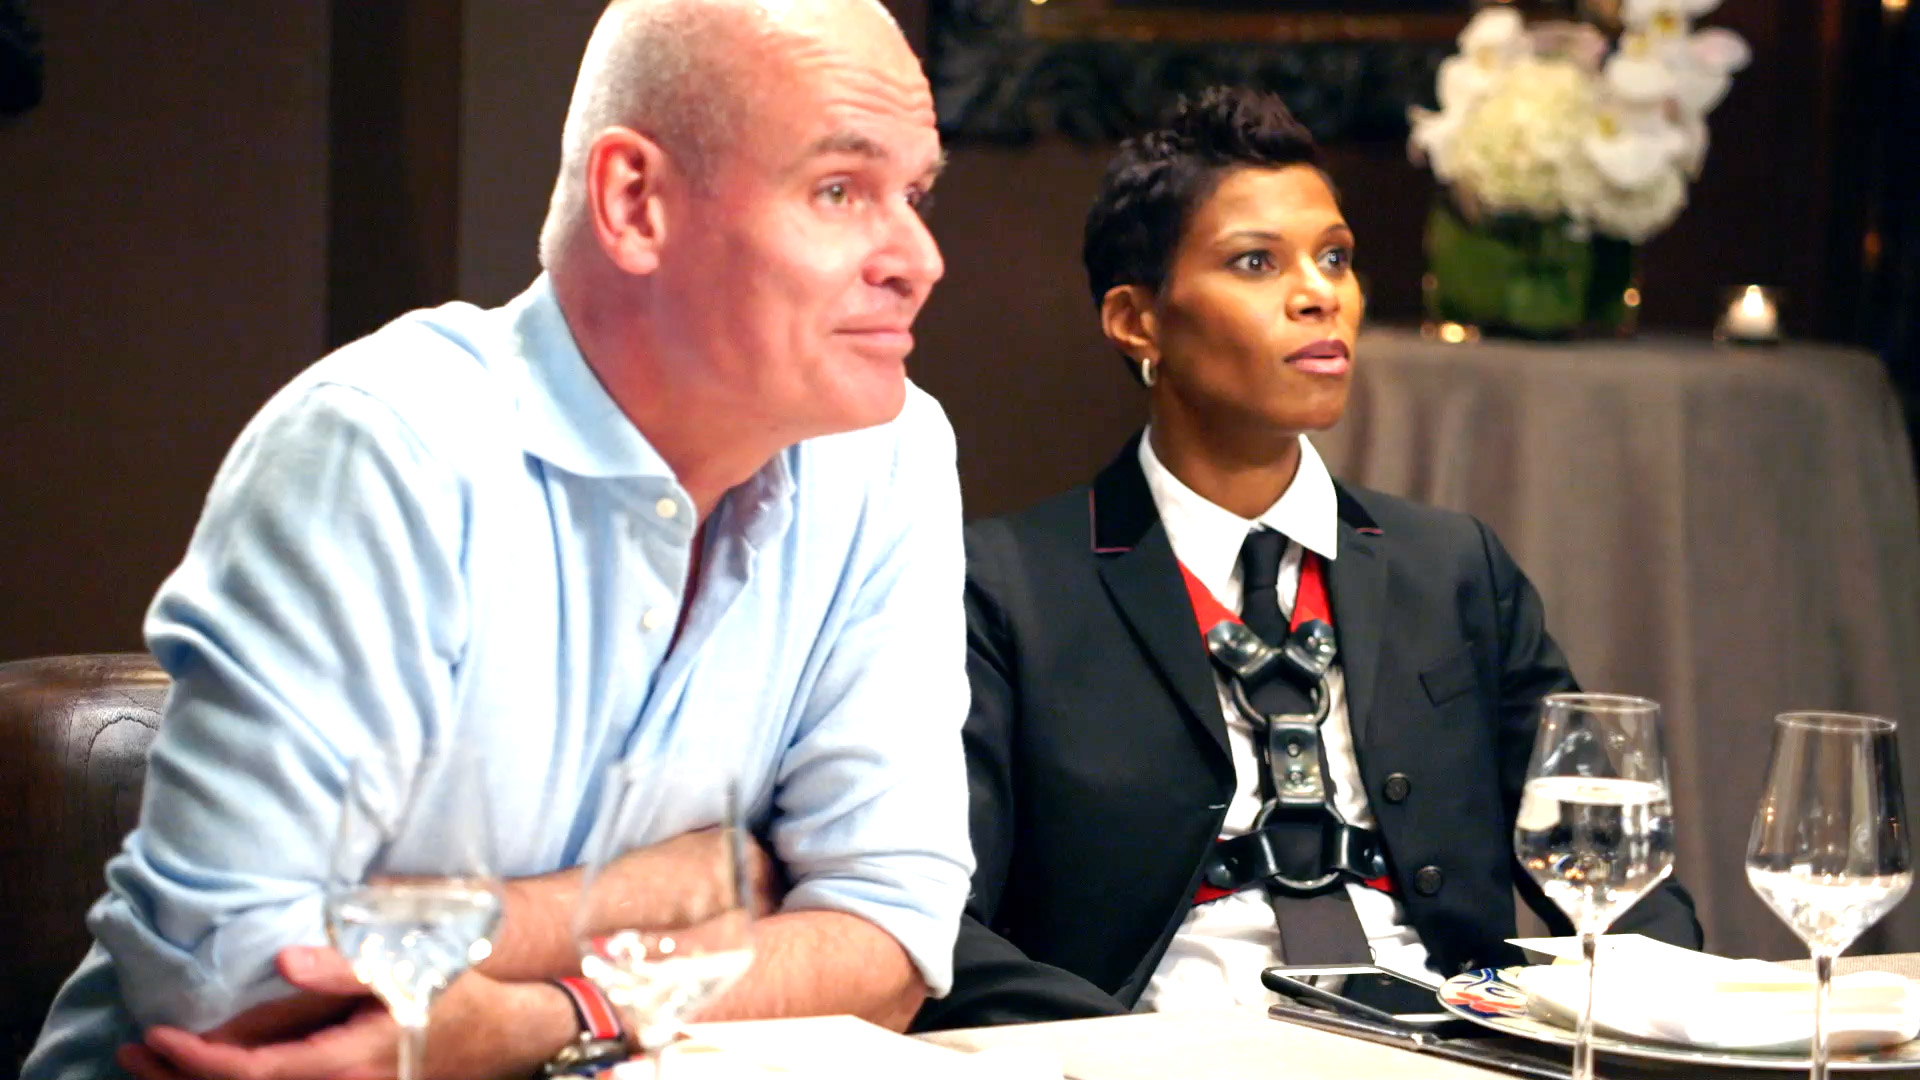 Tabatha Coffey Invites a Surprise Guest to Dinner